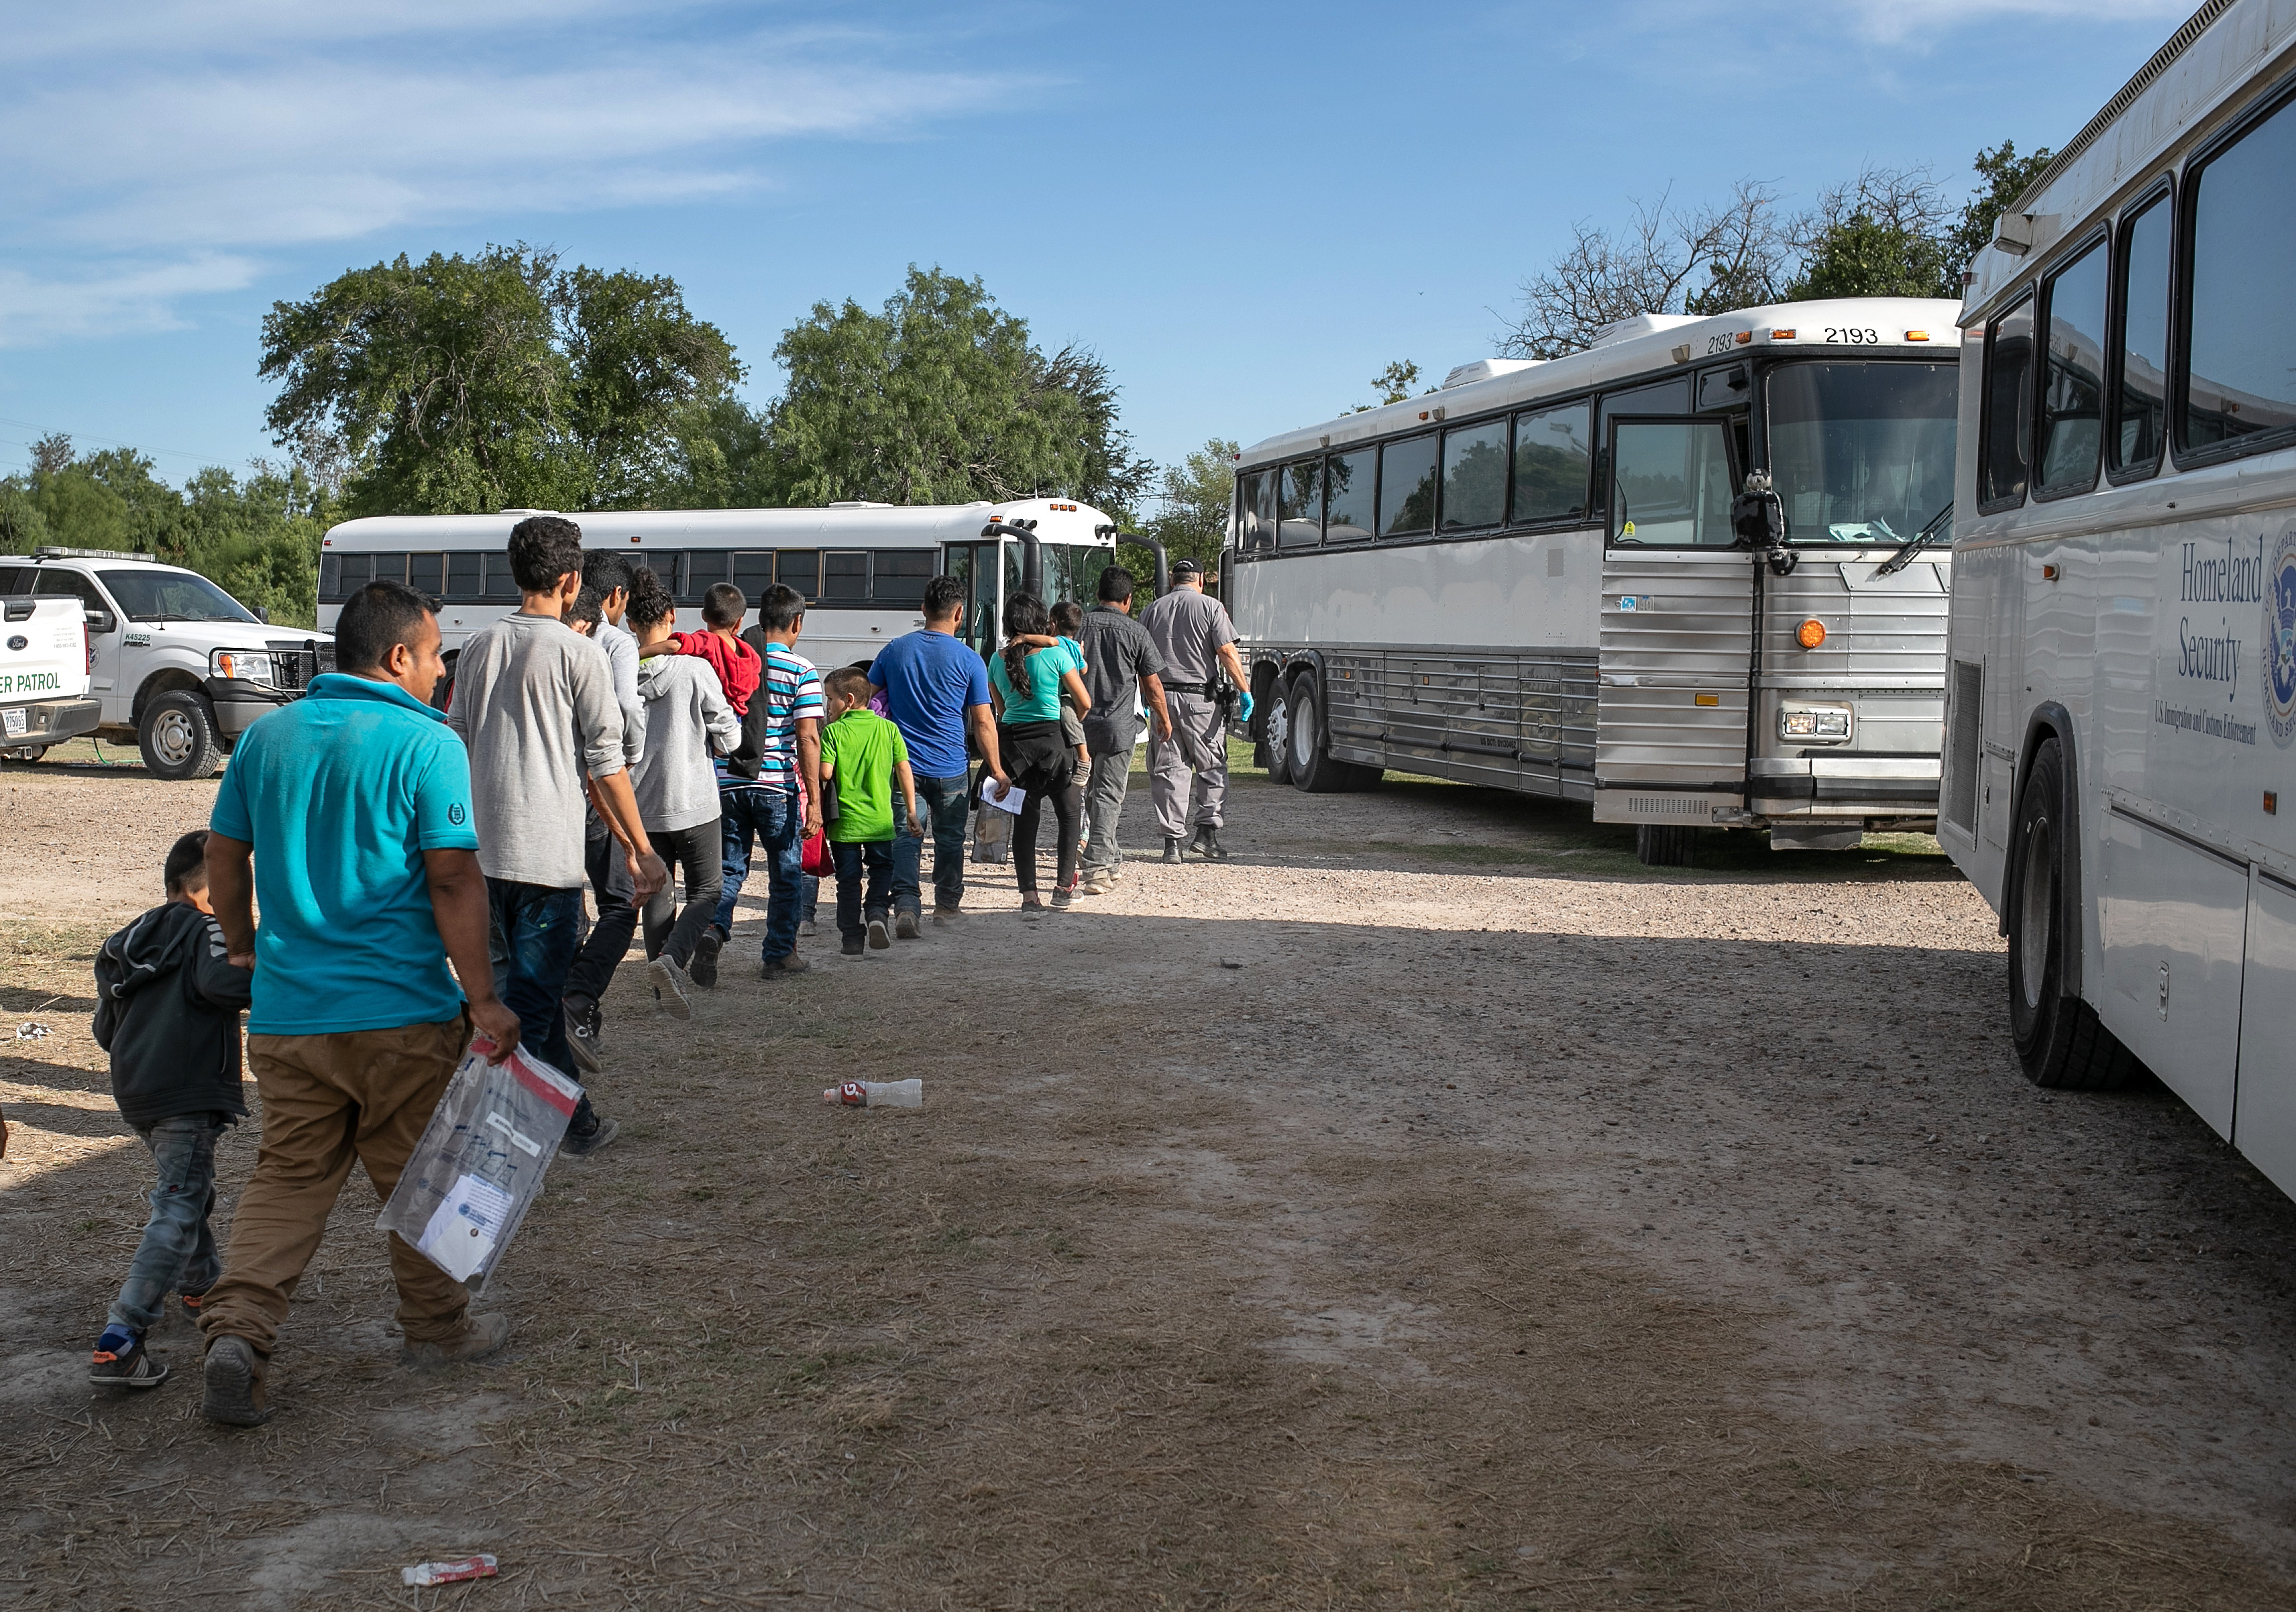 LOS EBANOS, TEXAS - JULY 02: Immigrants walk to U.S. Homeland Security busses to be transferred to a U.S. Border Patrol facility in McAllen after crossing from Mexico on July 02, 2019 in Los Ebanos, Texas. A group of hundreds of immigrants, most from Central America, turned themselves in to Border Patrol agents after rafting across the Rio Grande from Mexico to seek political asylum in the United States. (Photo by John Moore/Getty Images)